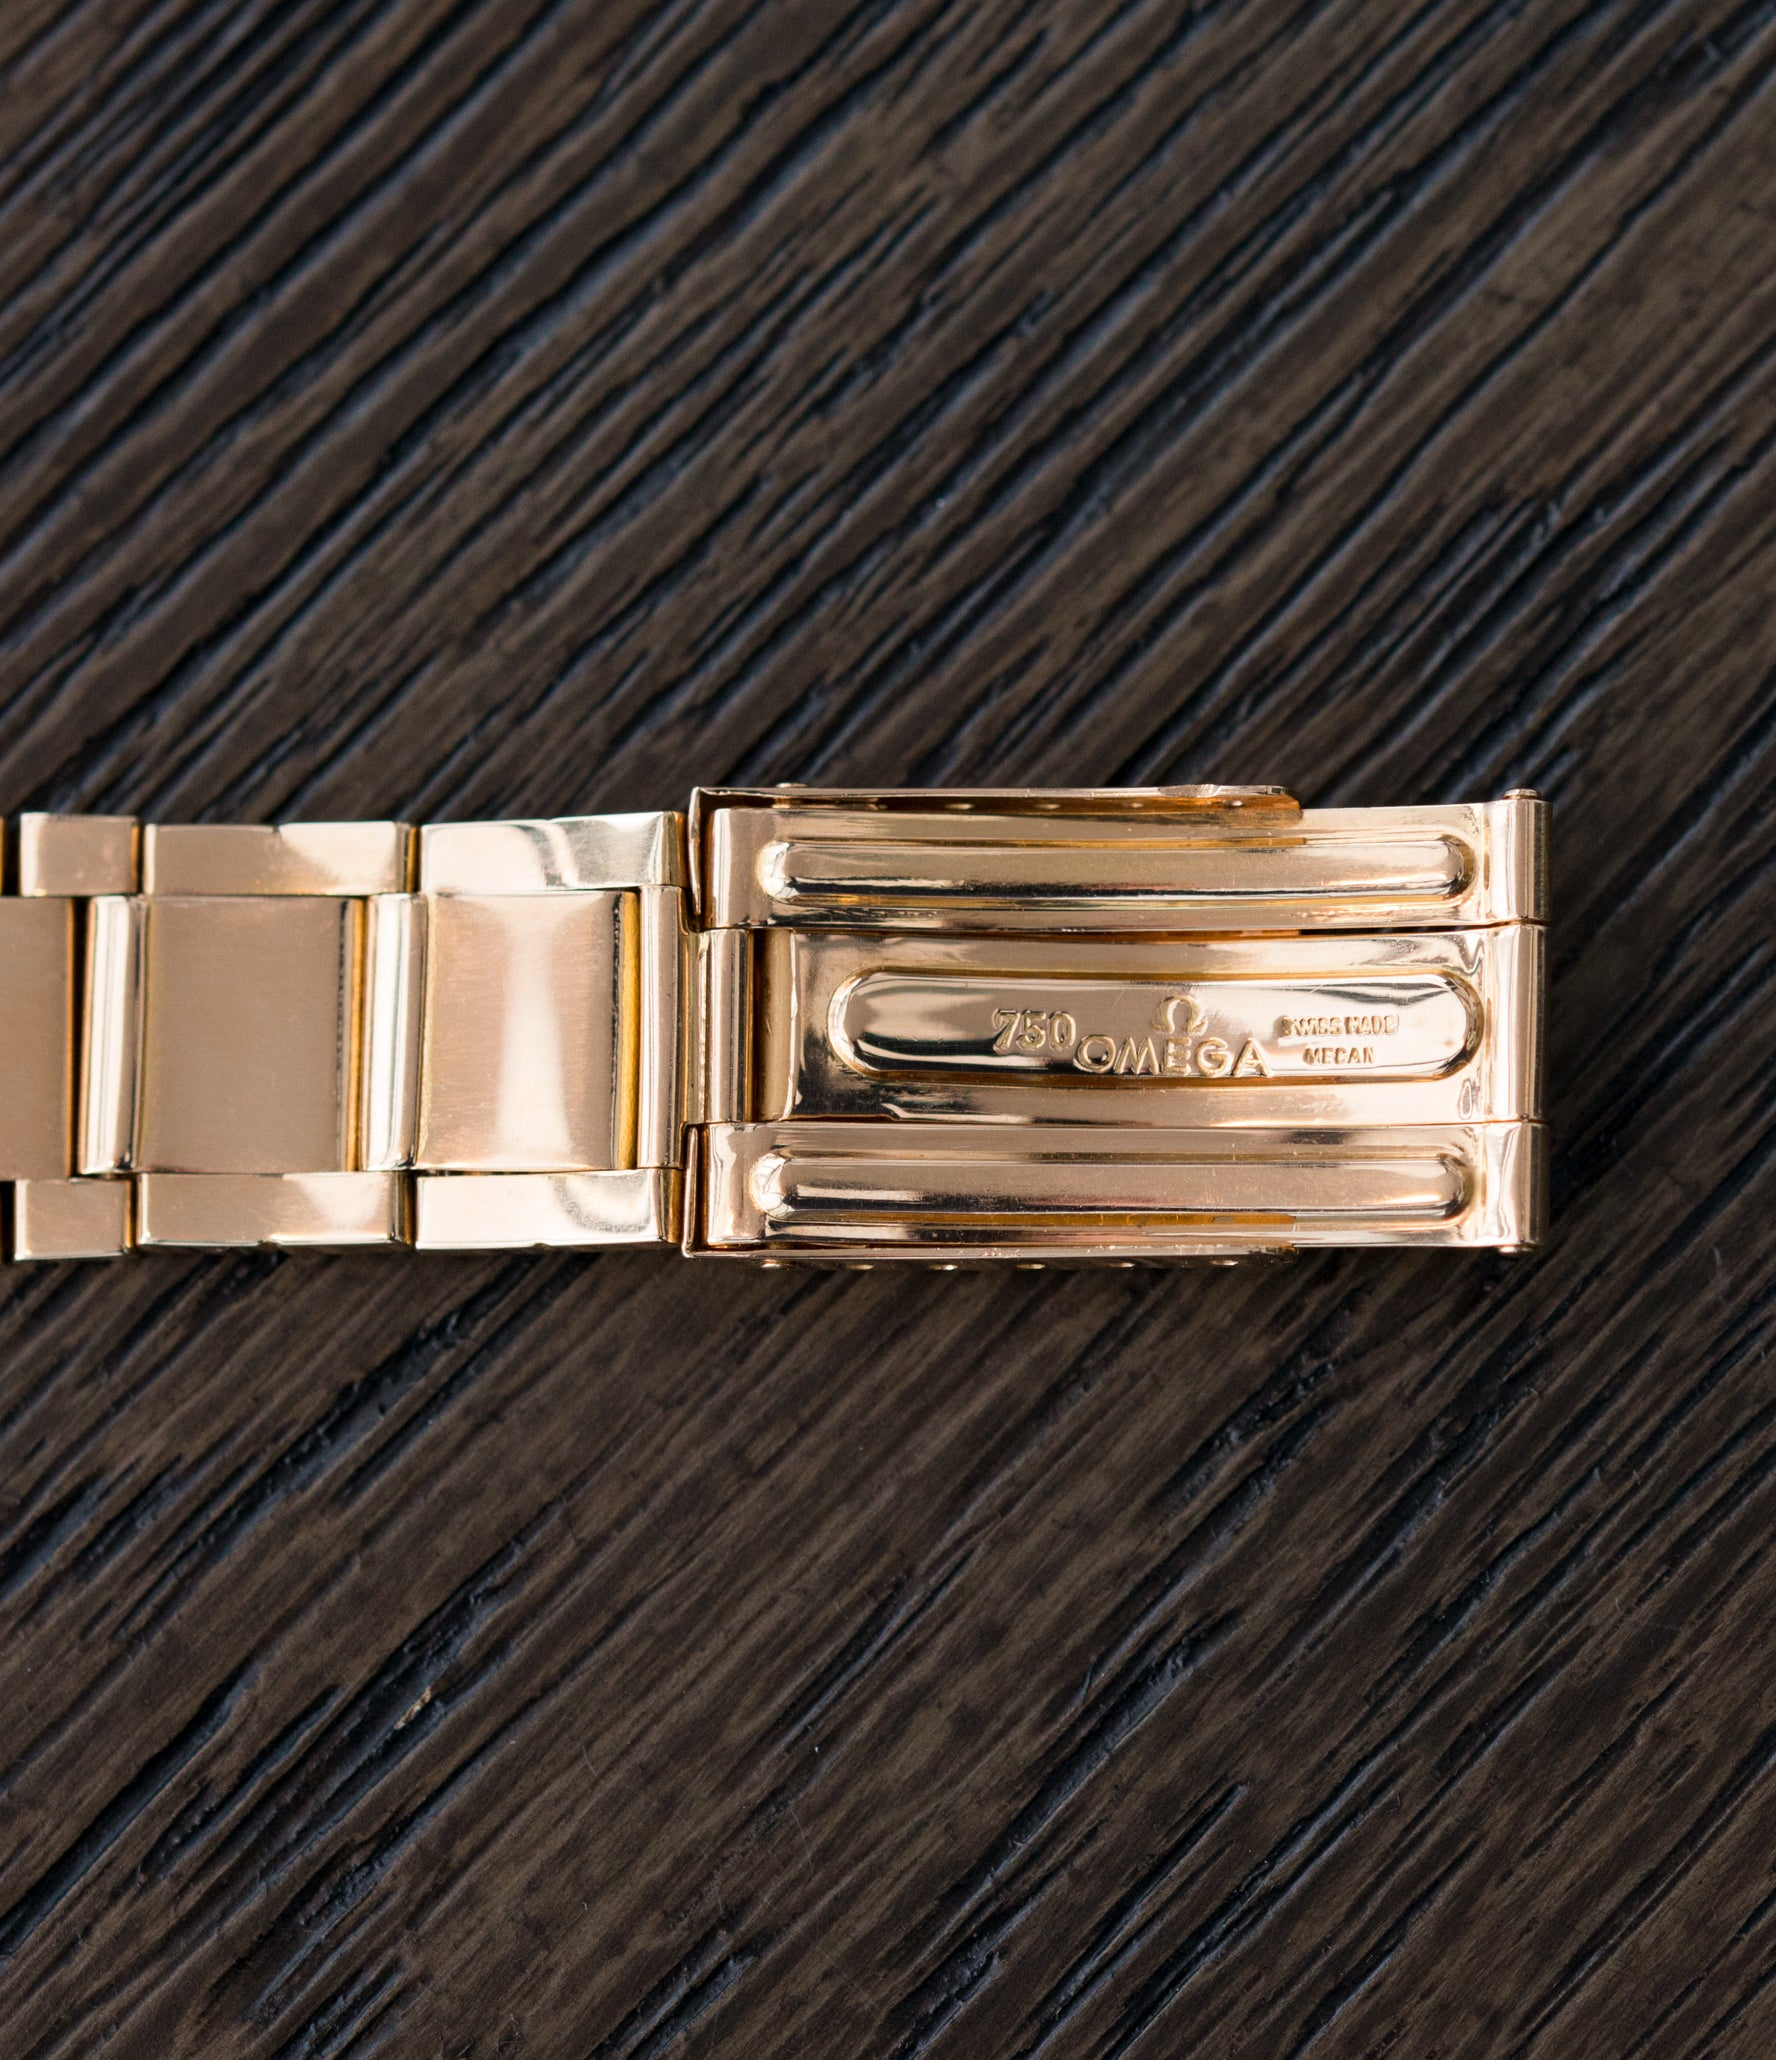 vintage Omega deployant clasp Constellation De Luxe 2799 yellow gold rare dress watch for sale online at A Collected Man London UK specialist of rare vintage watches